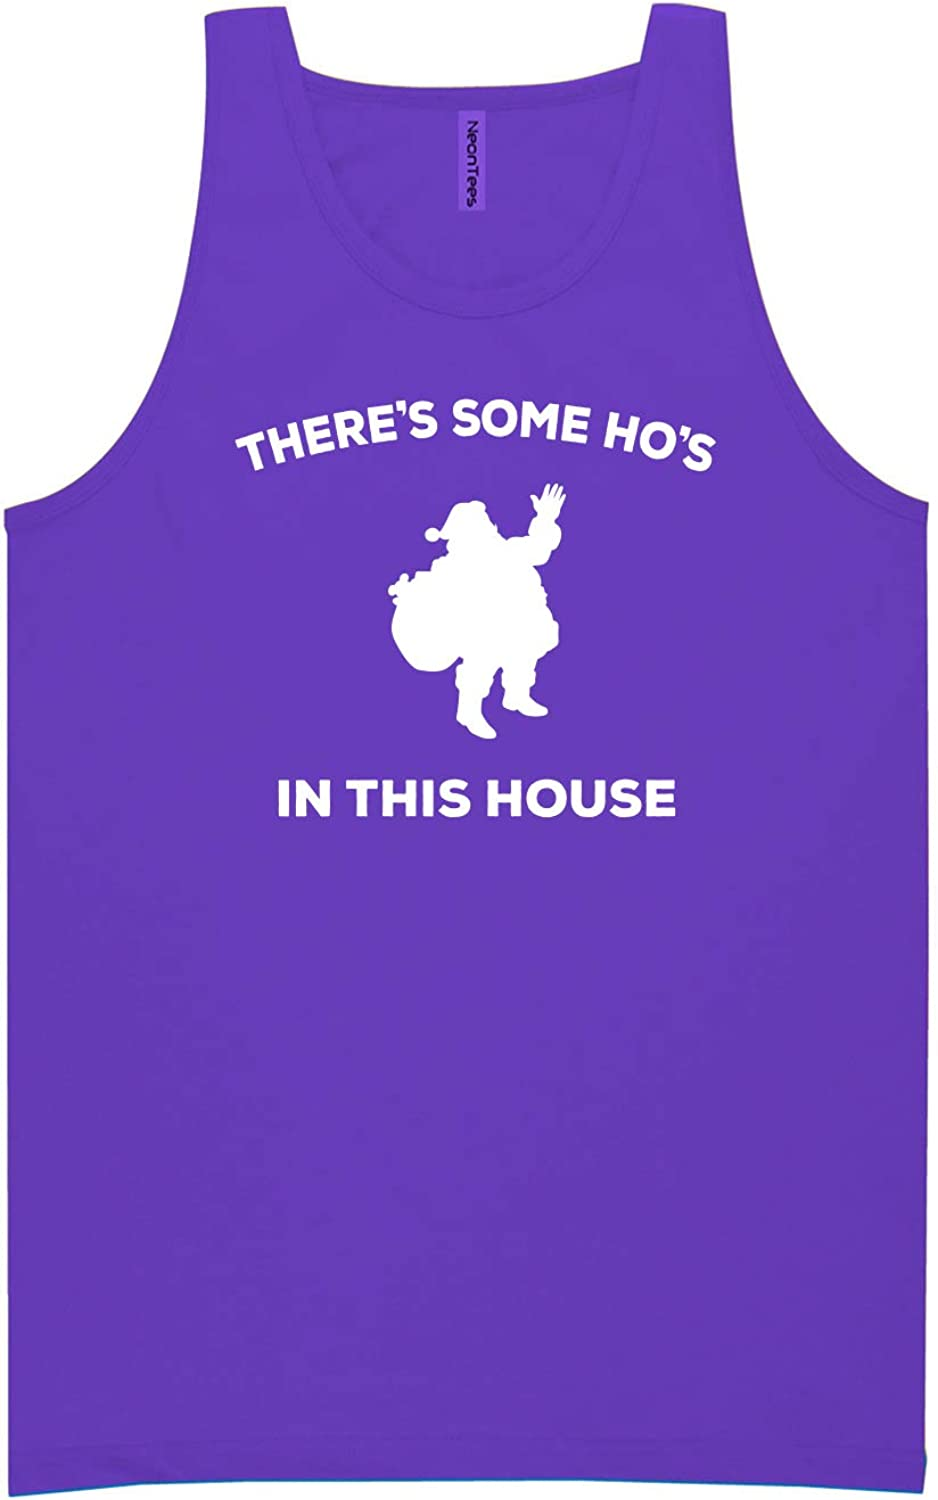 There's Some Ho's in This House Neon Purple Tank Top - XX-Large